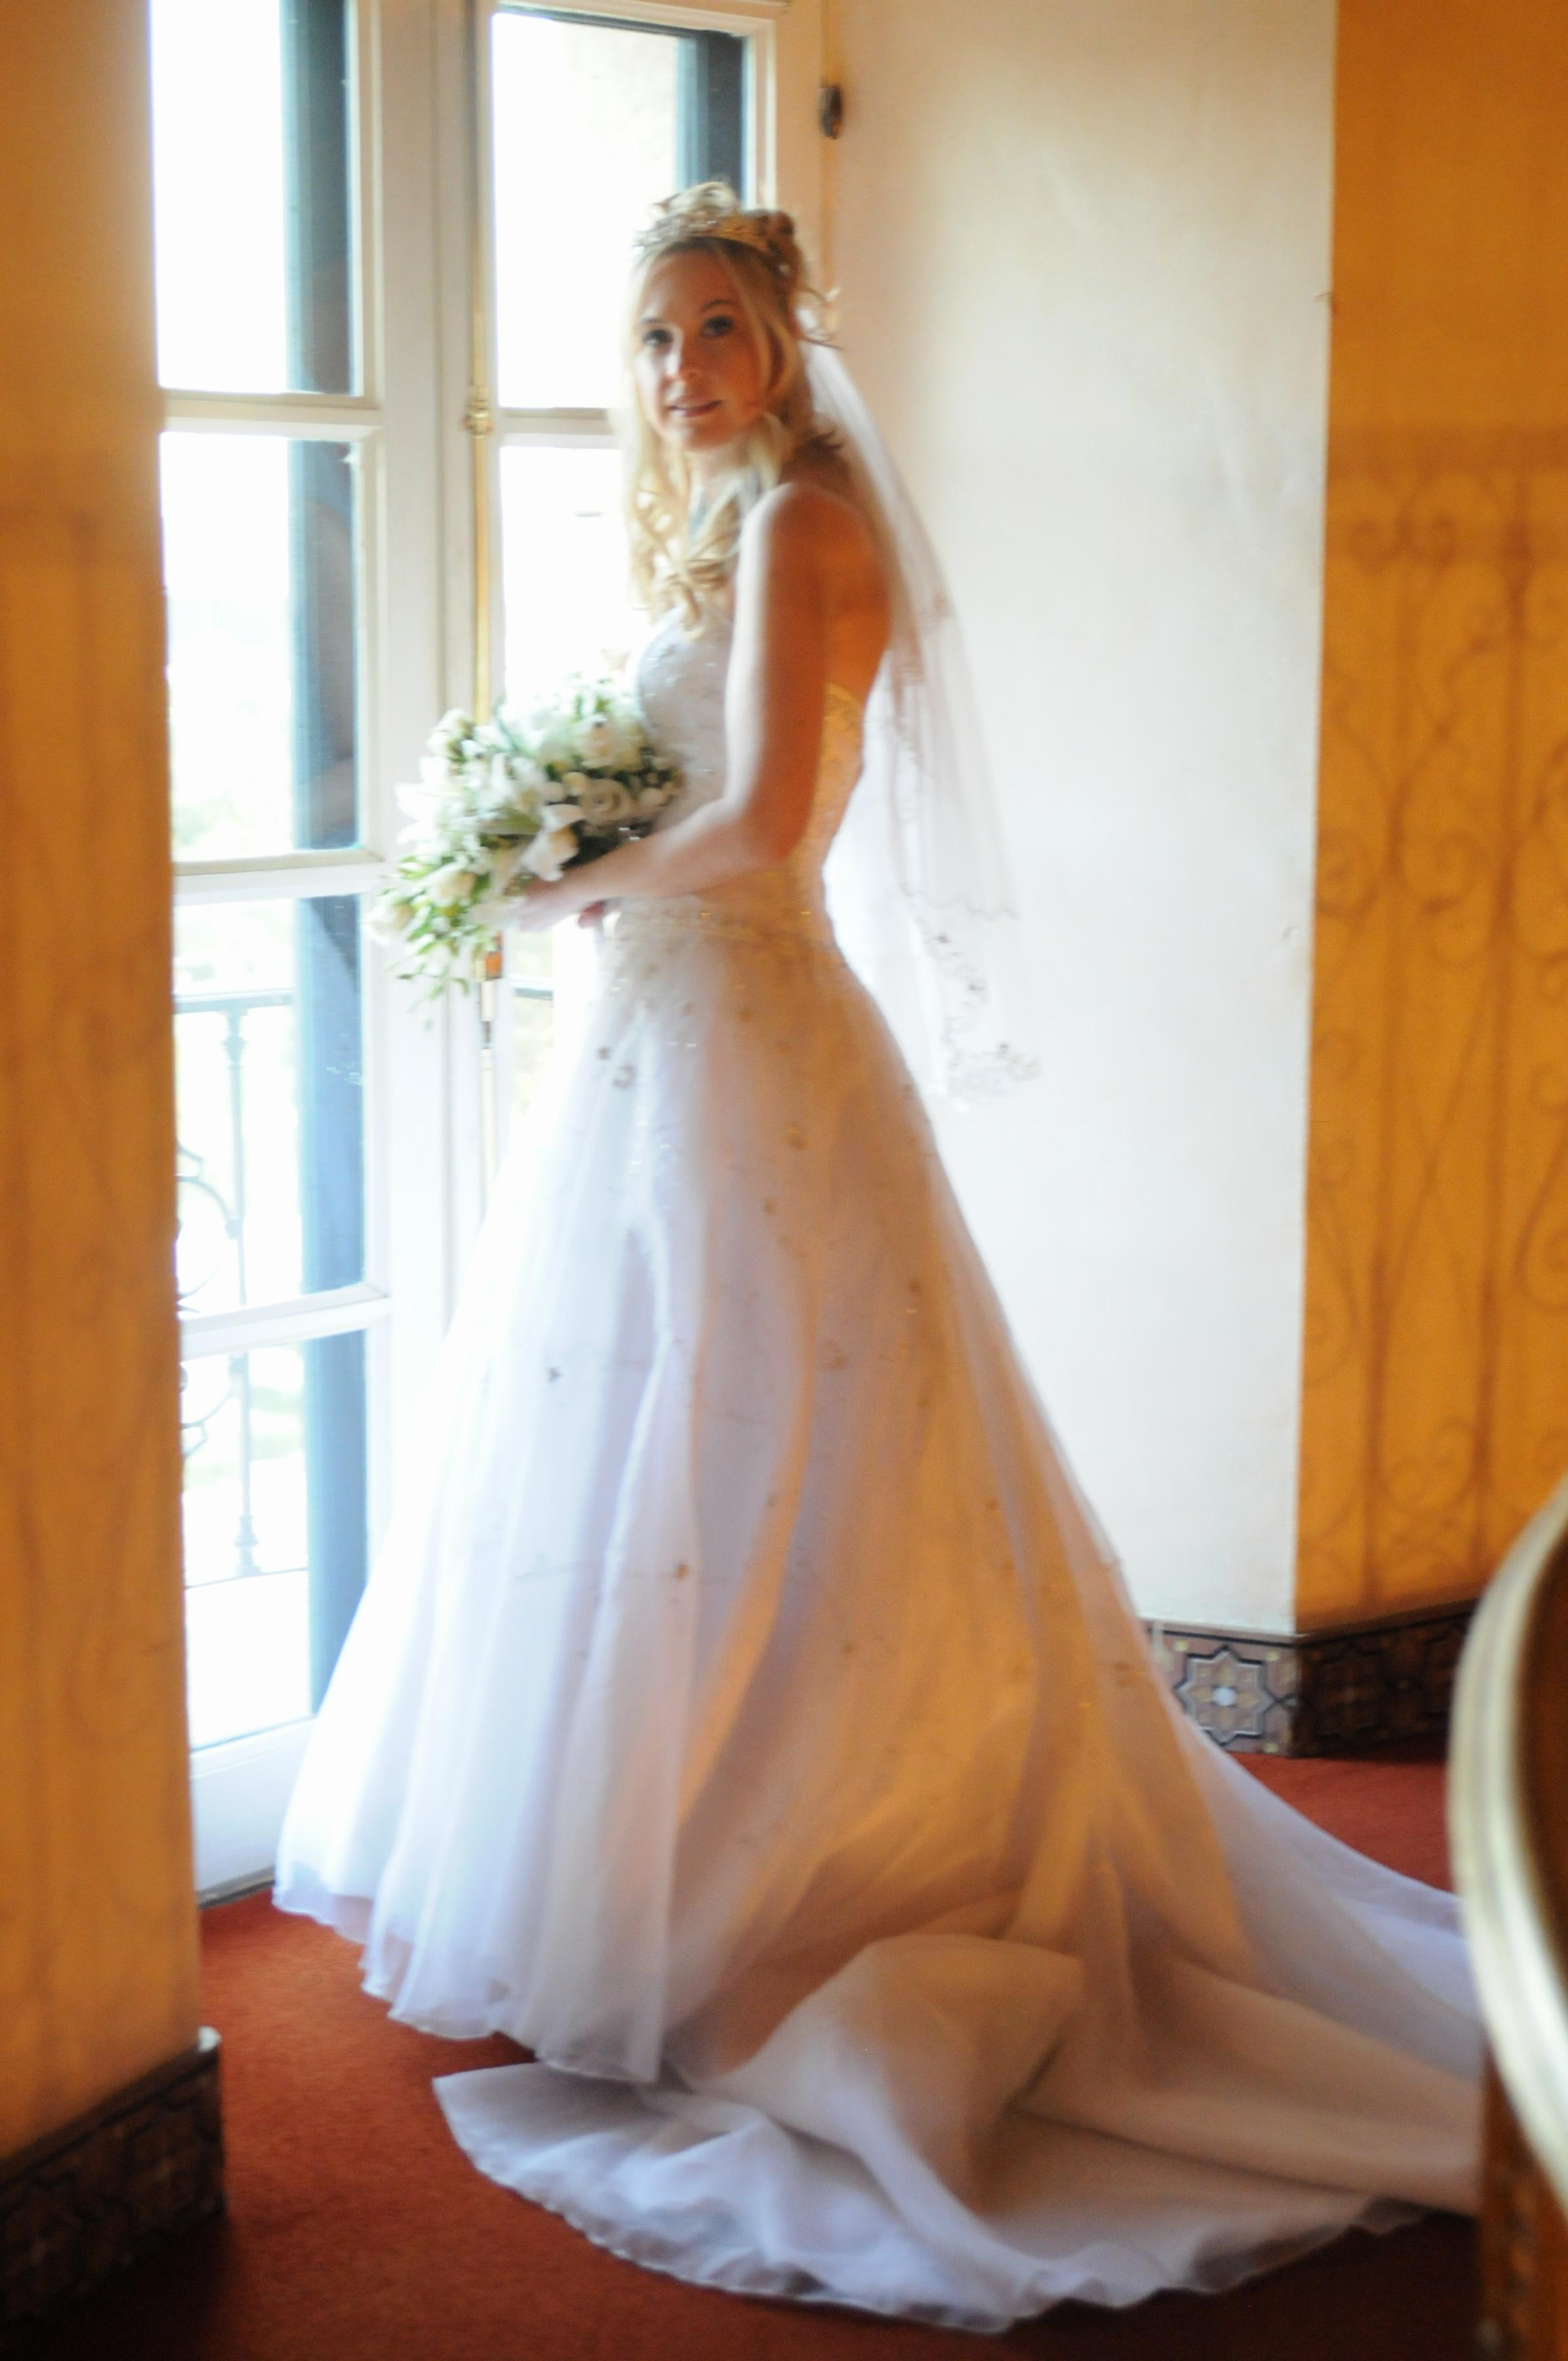 Wedding Dresses, Fashion, dress, Bride, Beautiful, K-kamera photojournalistic services